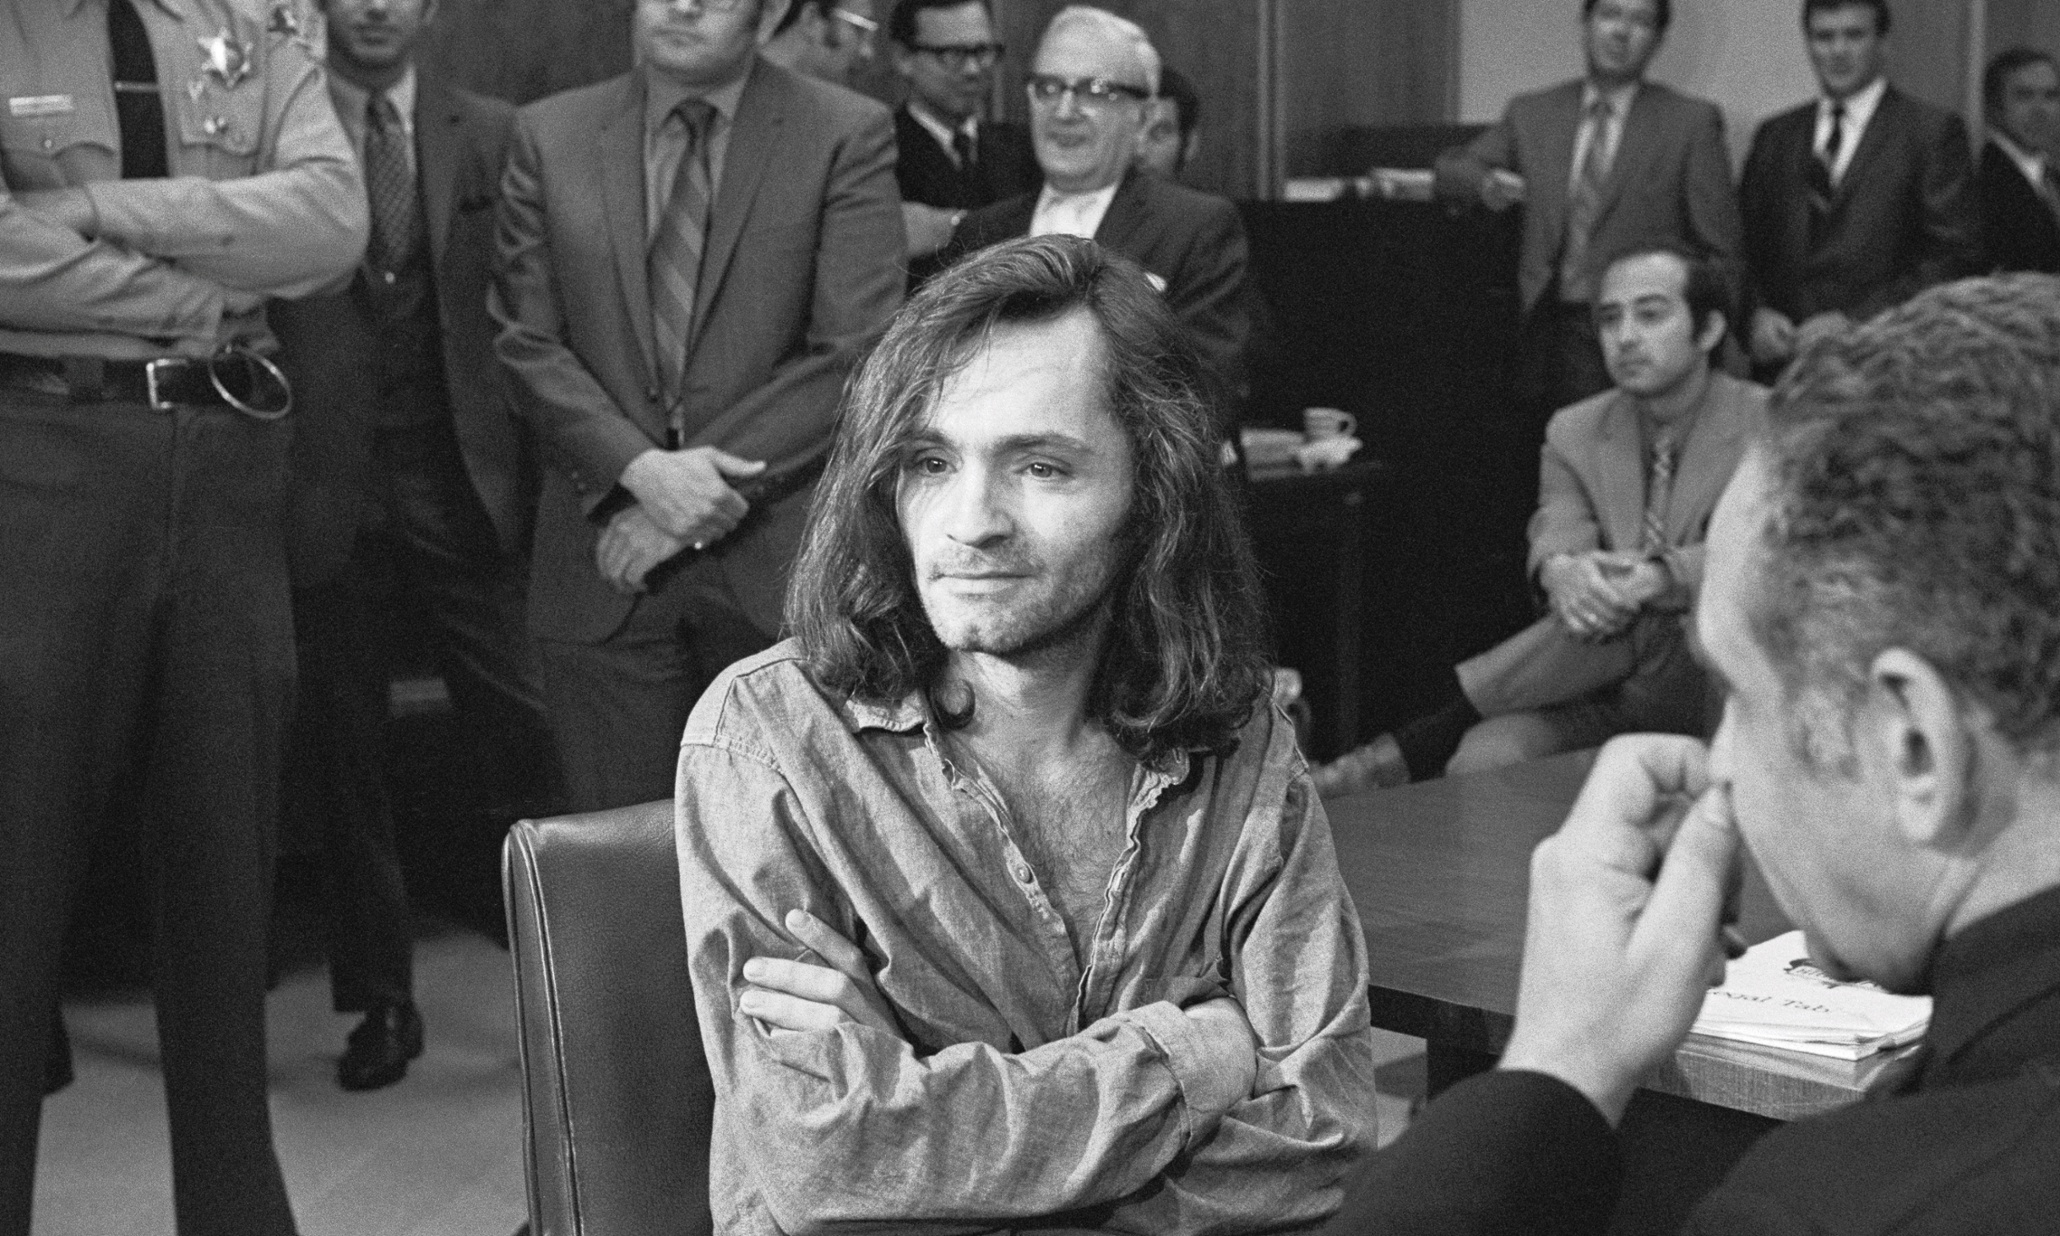 Charles Milles Manson >> Charles Manson's sordid legacy endures thanks to pop culture's odd fascination | Television ...